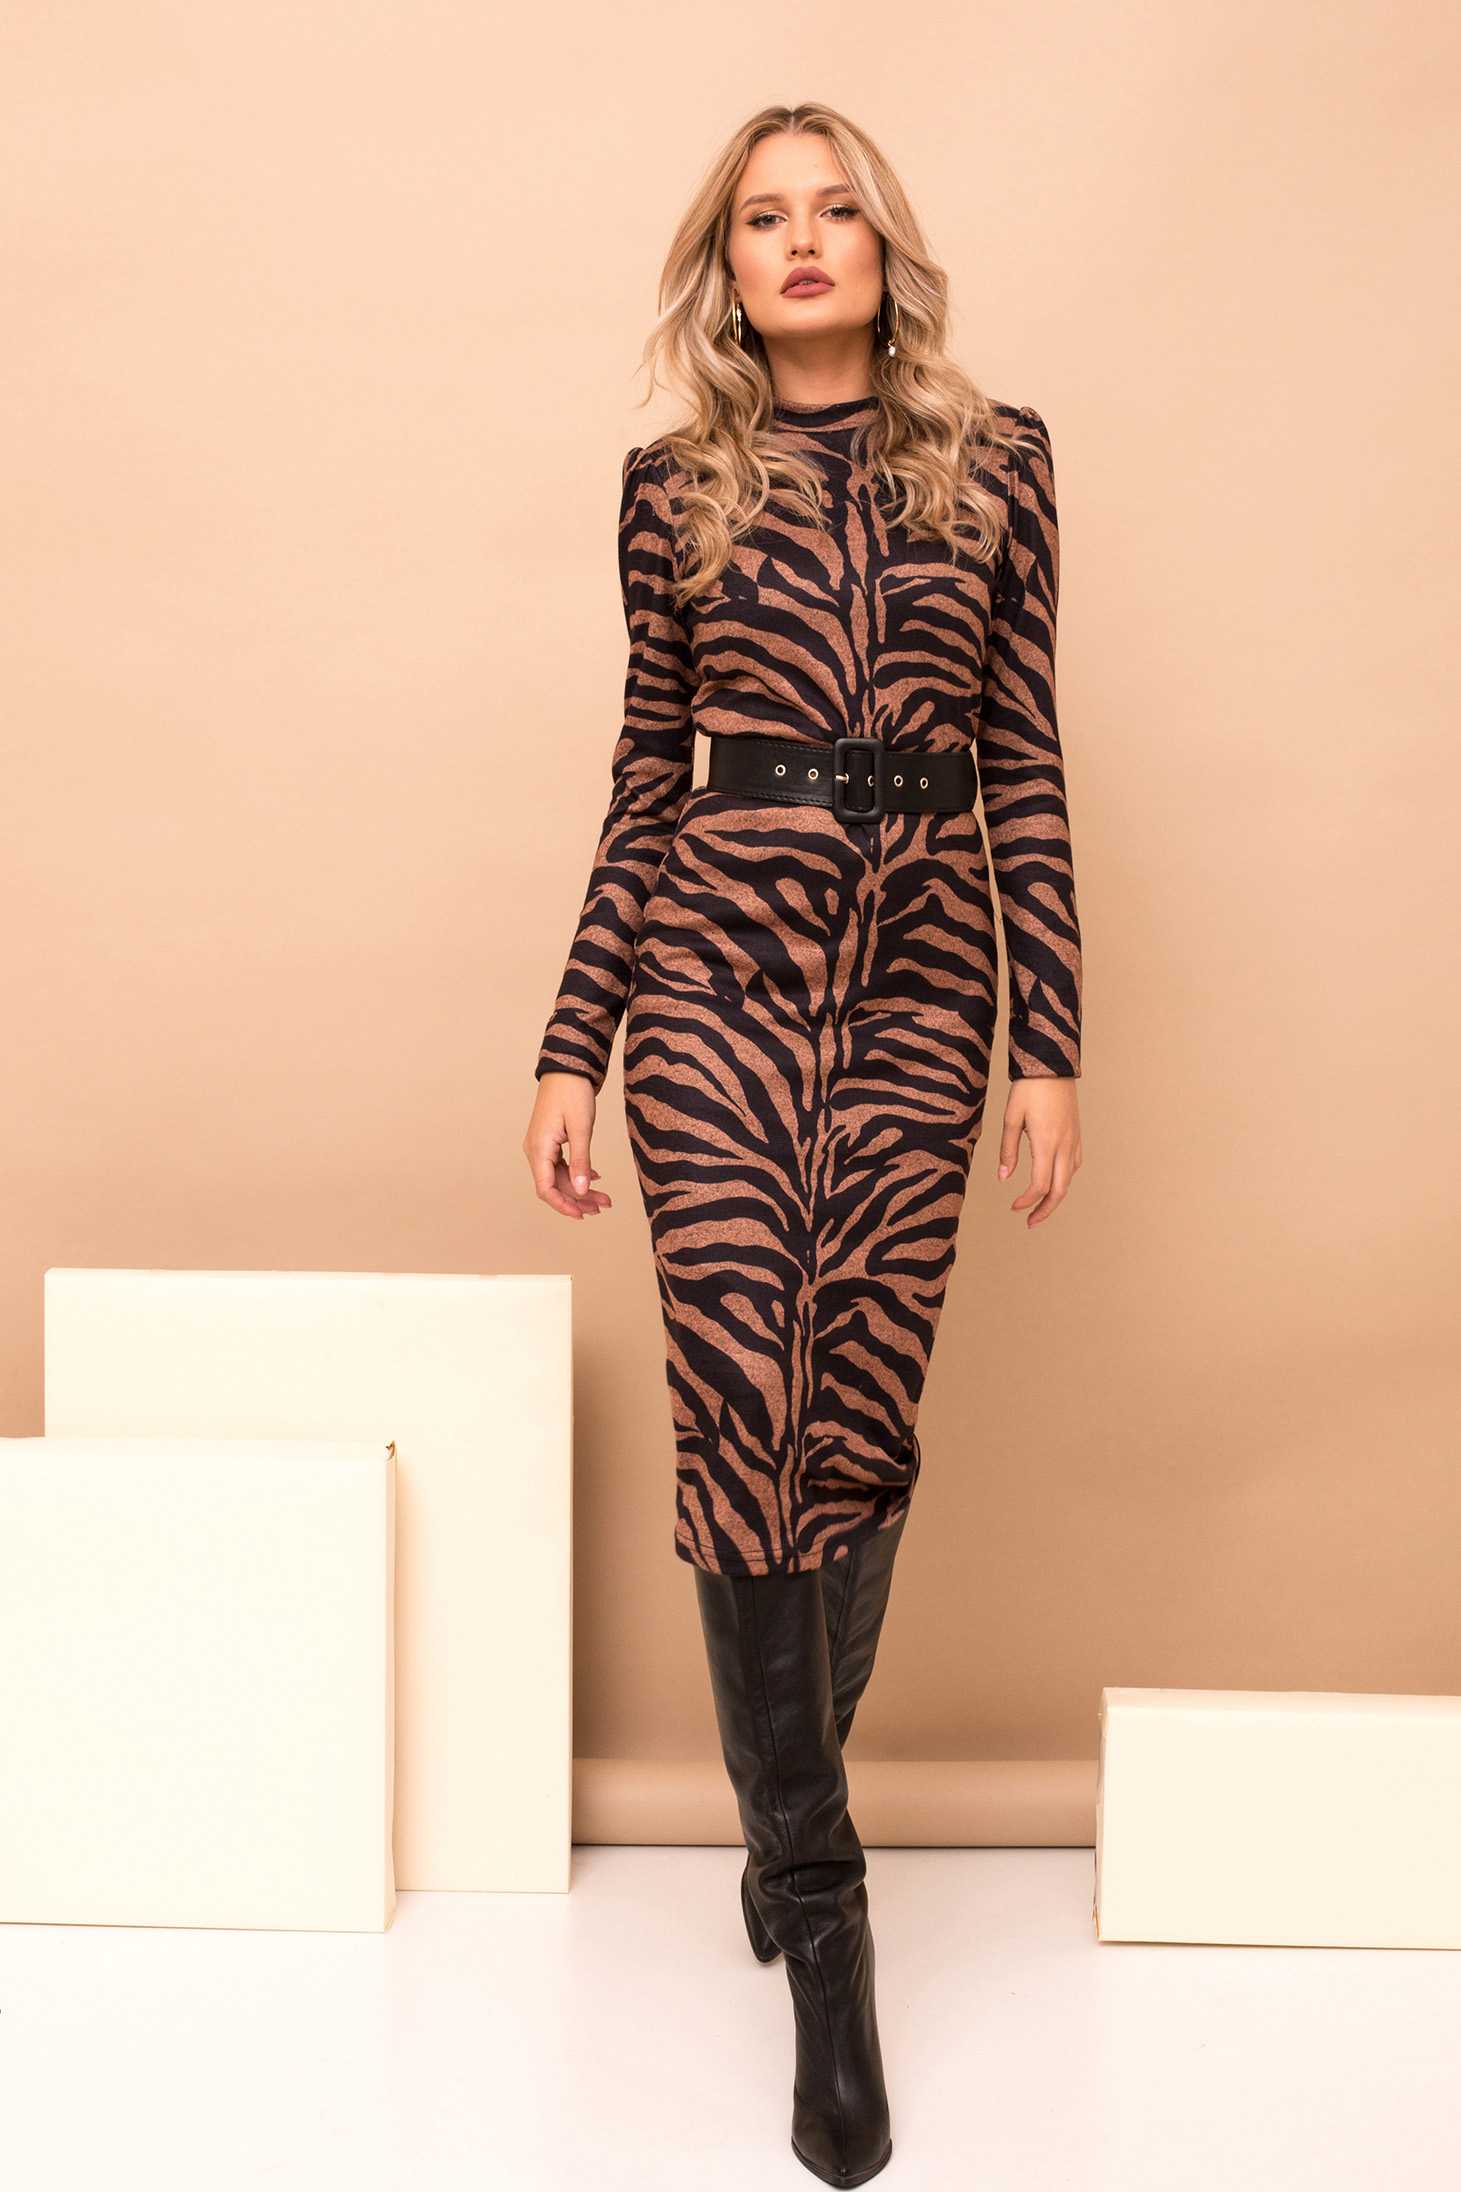 Dress brown pencil midi elegant knitted fabric tiger print accessorized with belt